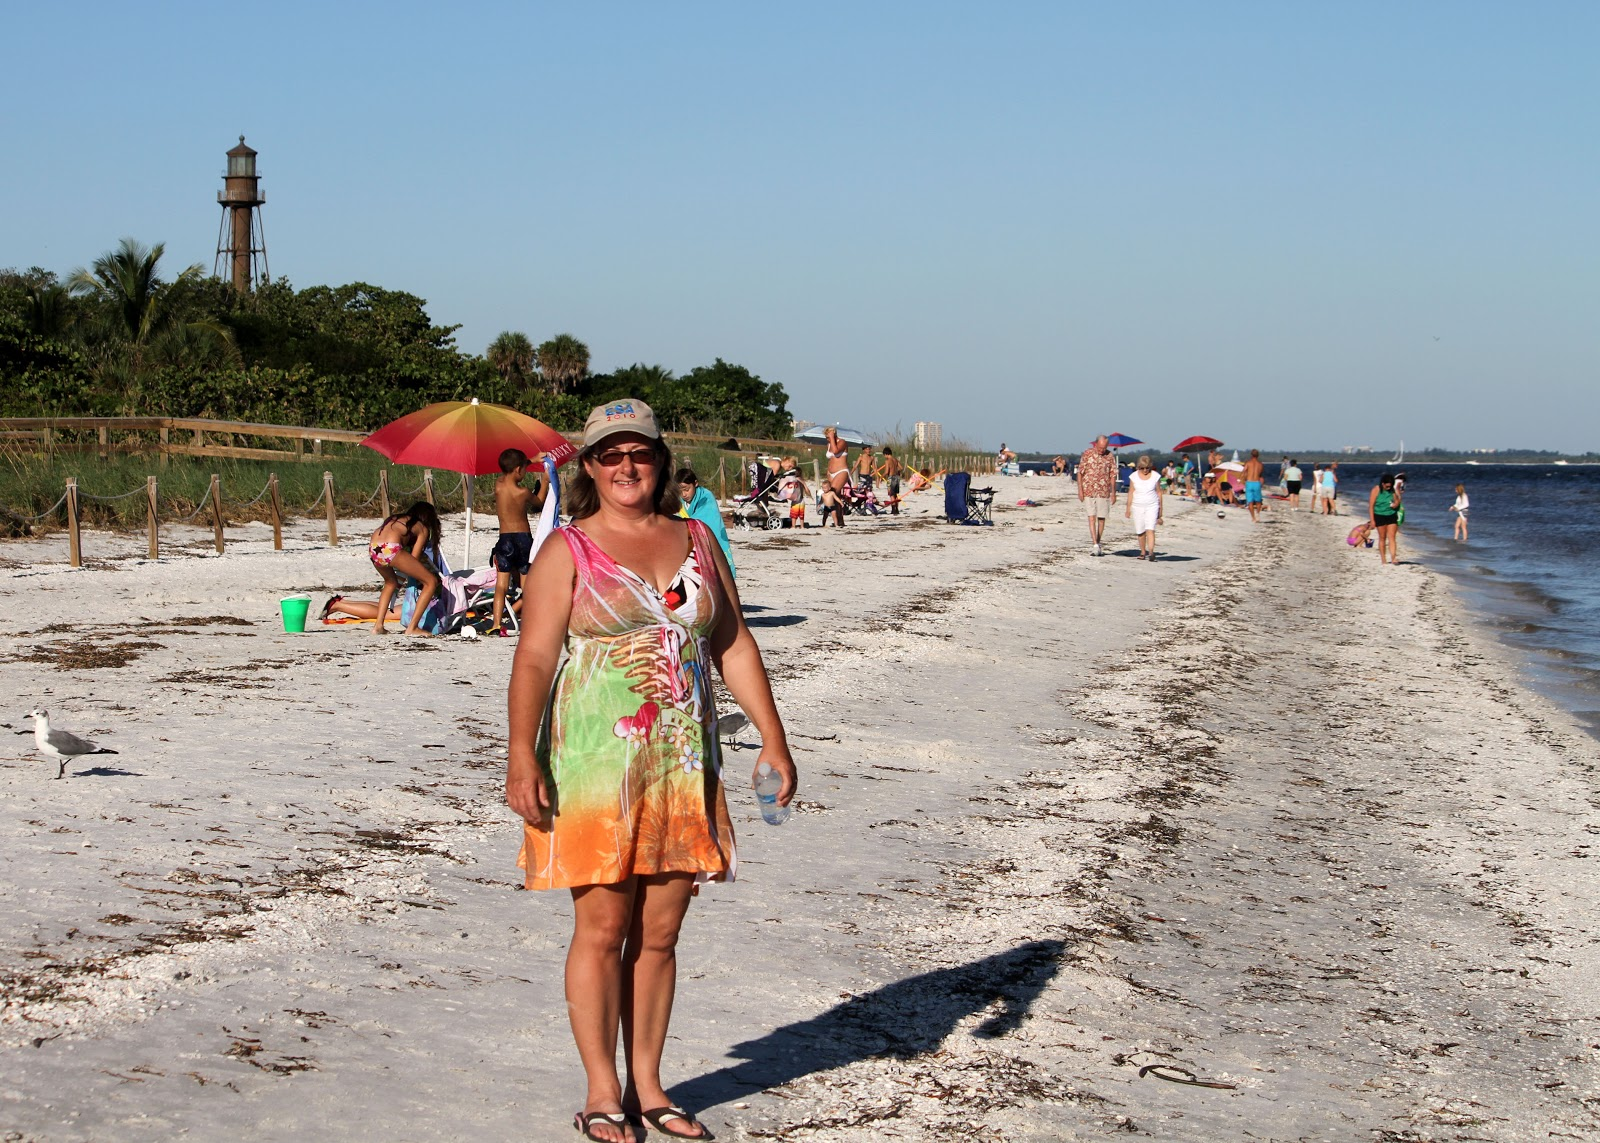 Dennis and holly never stay home sanibel island florida a lighthouse beach on a weekend in october nvjuhfo Gallery